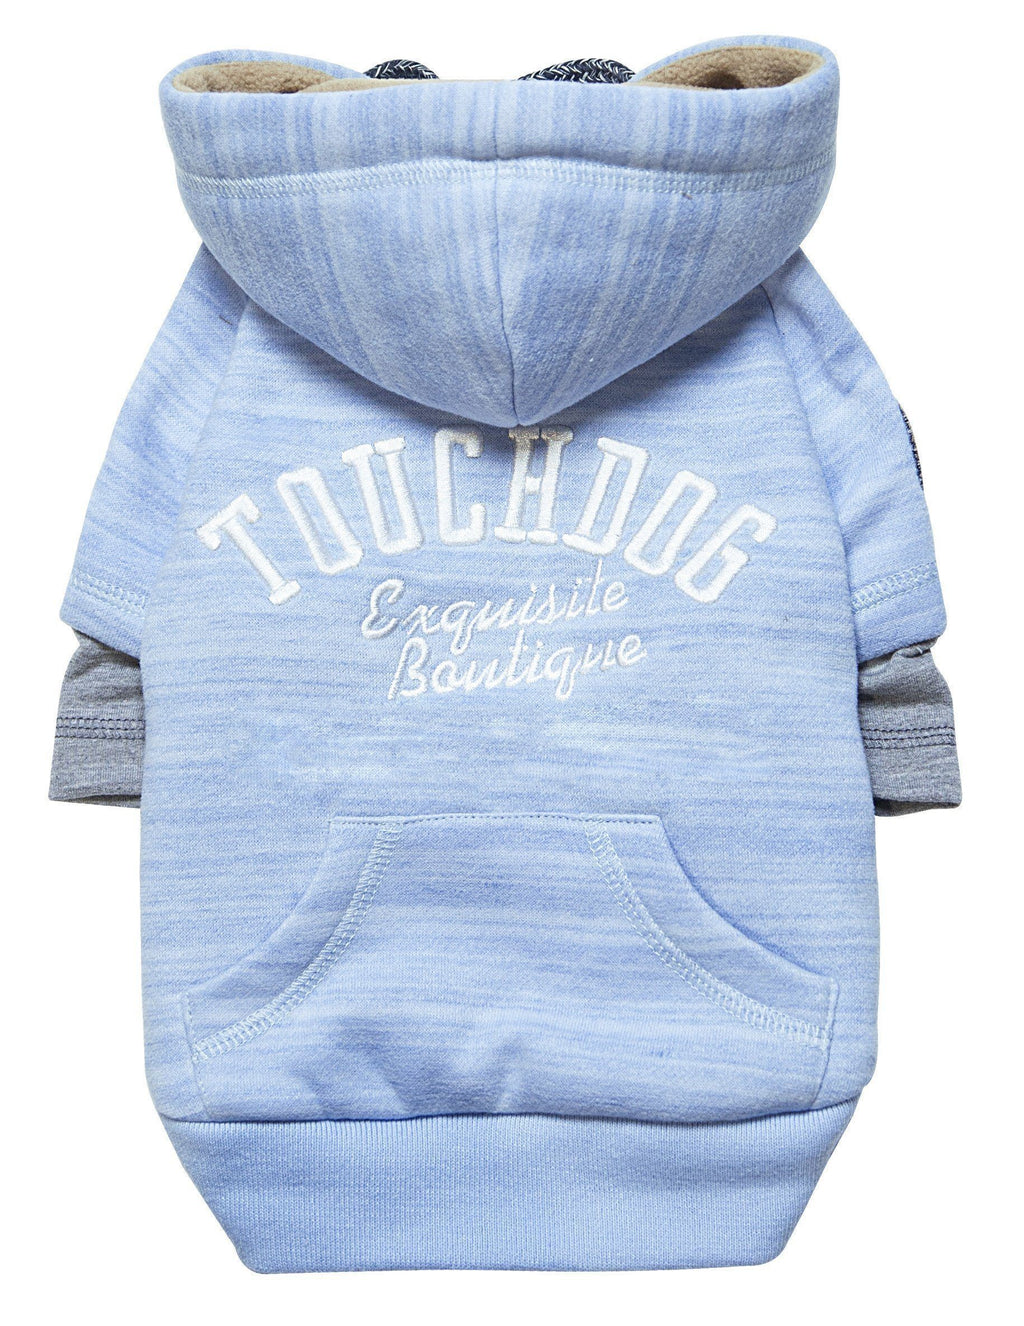 Touchdog ® Hampton Beach Ultra-Soft Blasted Cotton Hooded Dog Sweater X-Small Blue